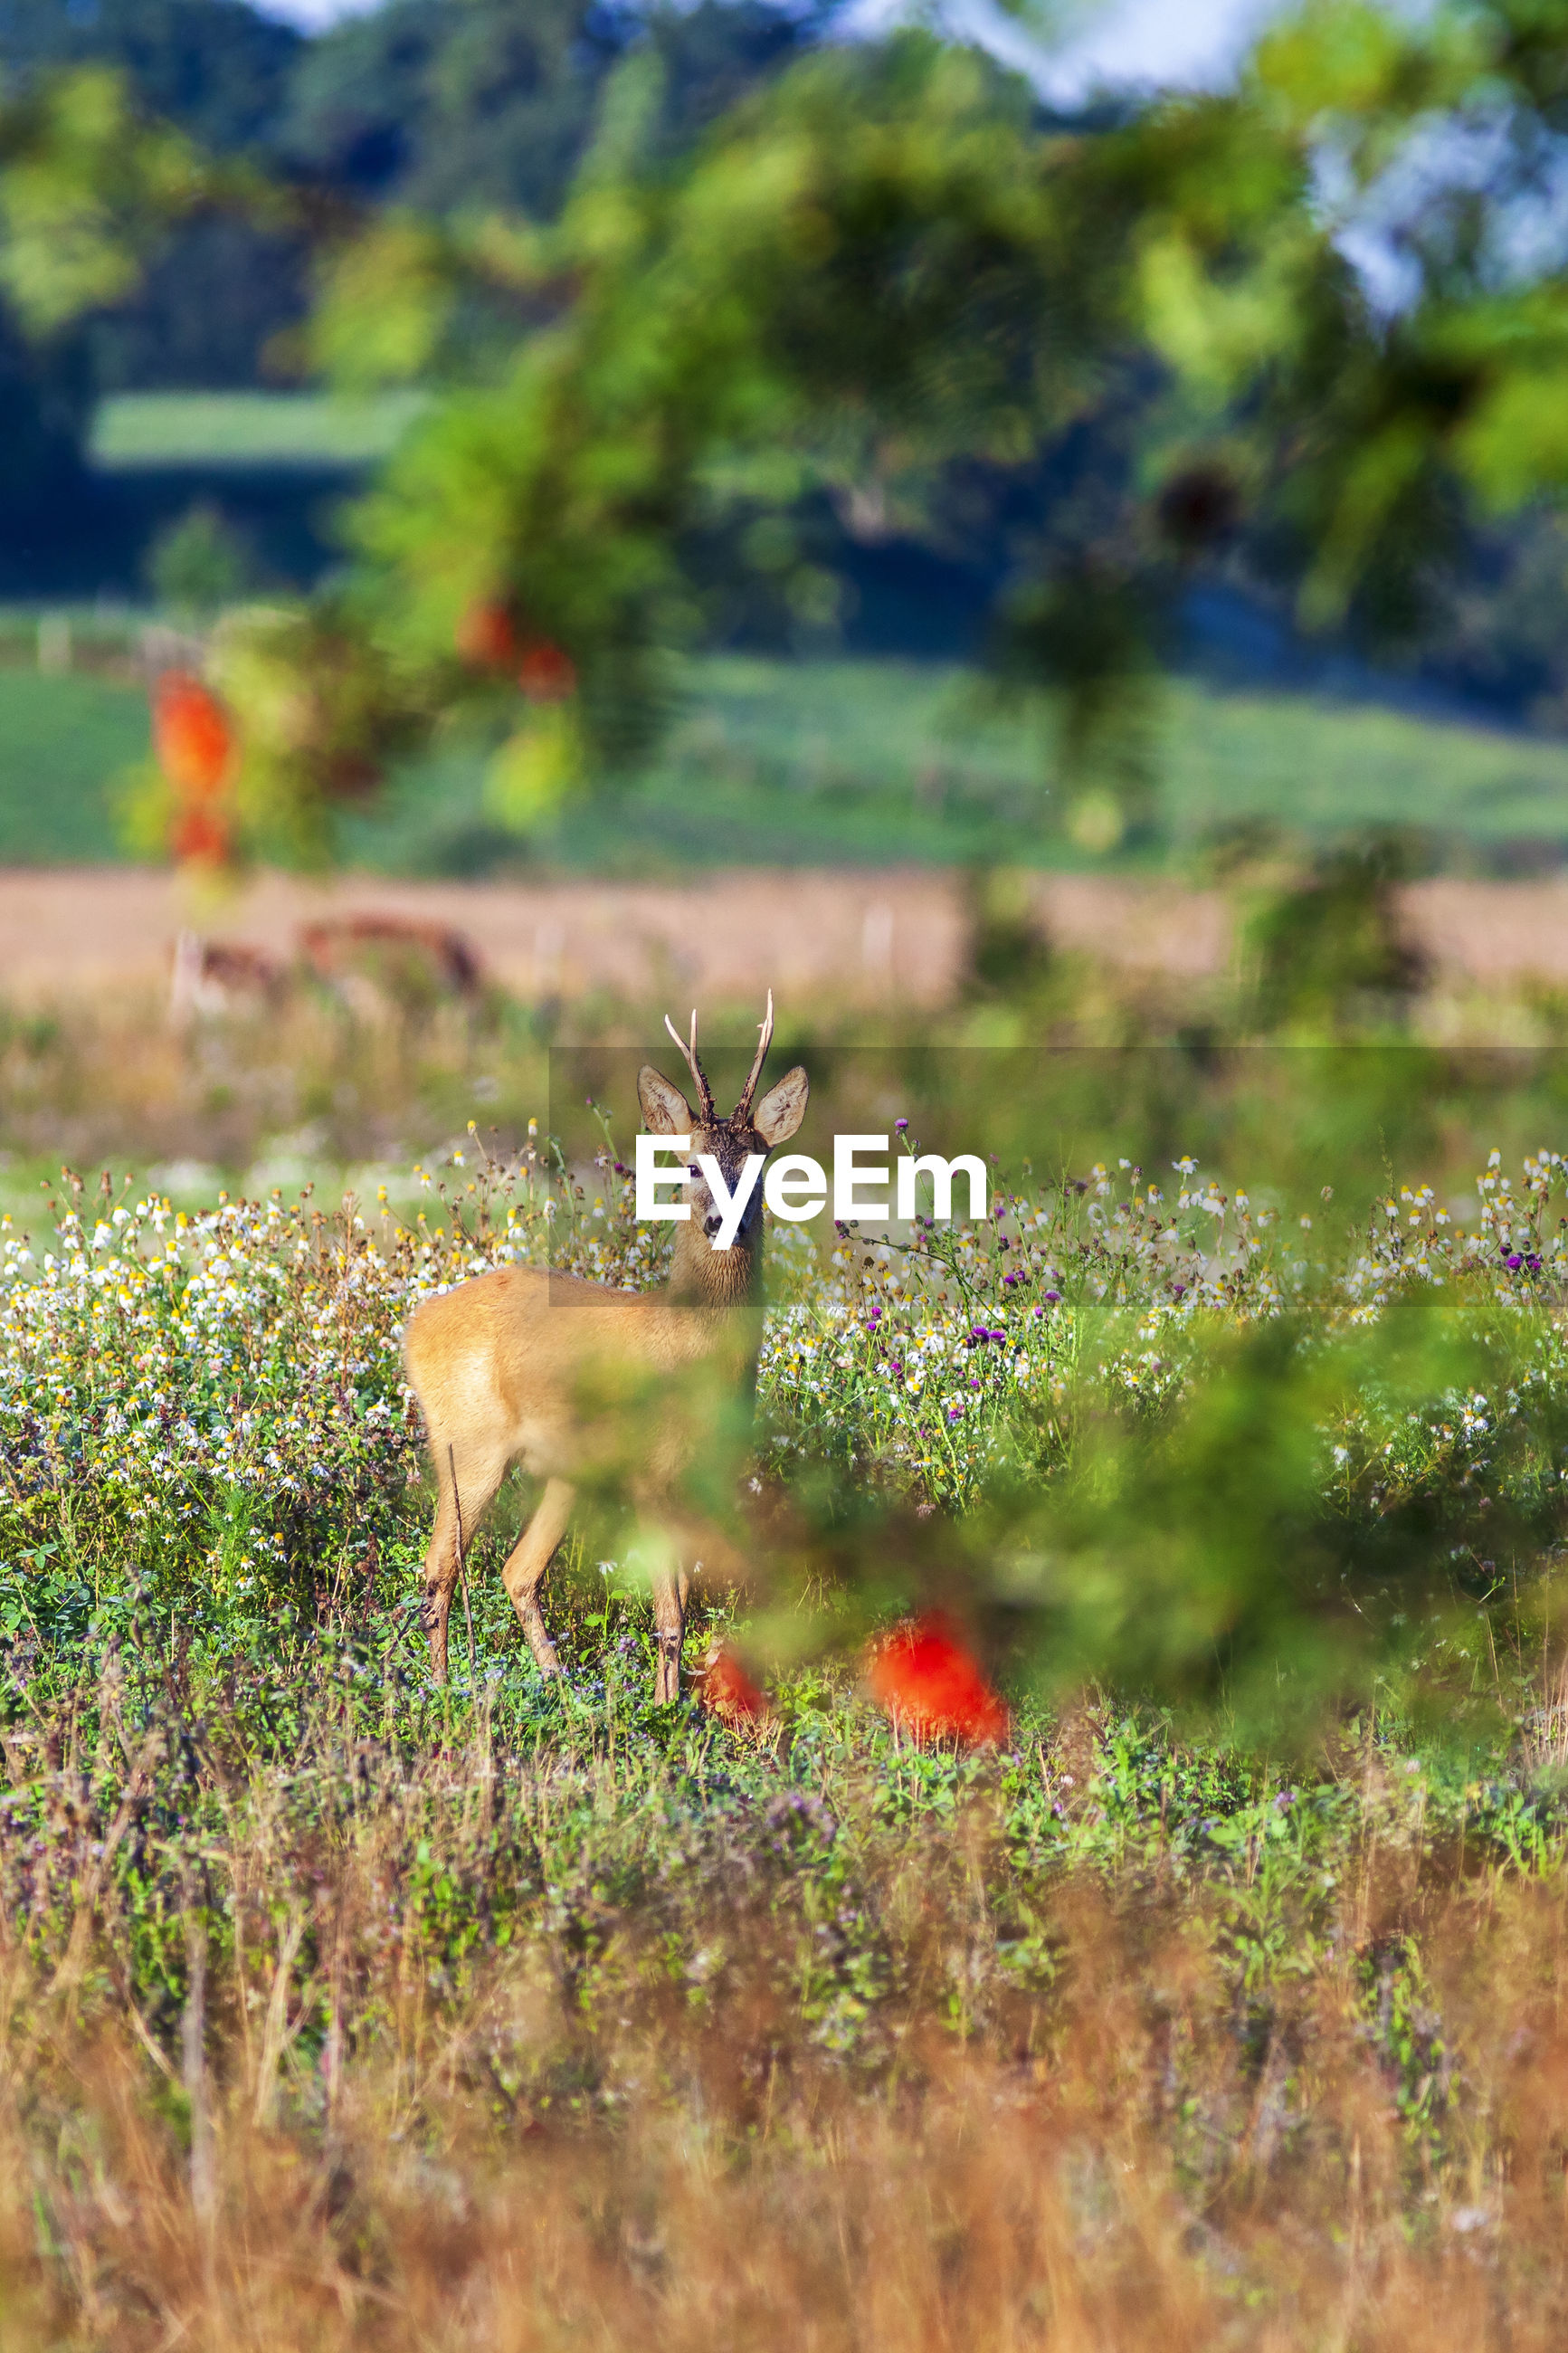 VIEW OF DEER ON PLANT